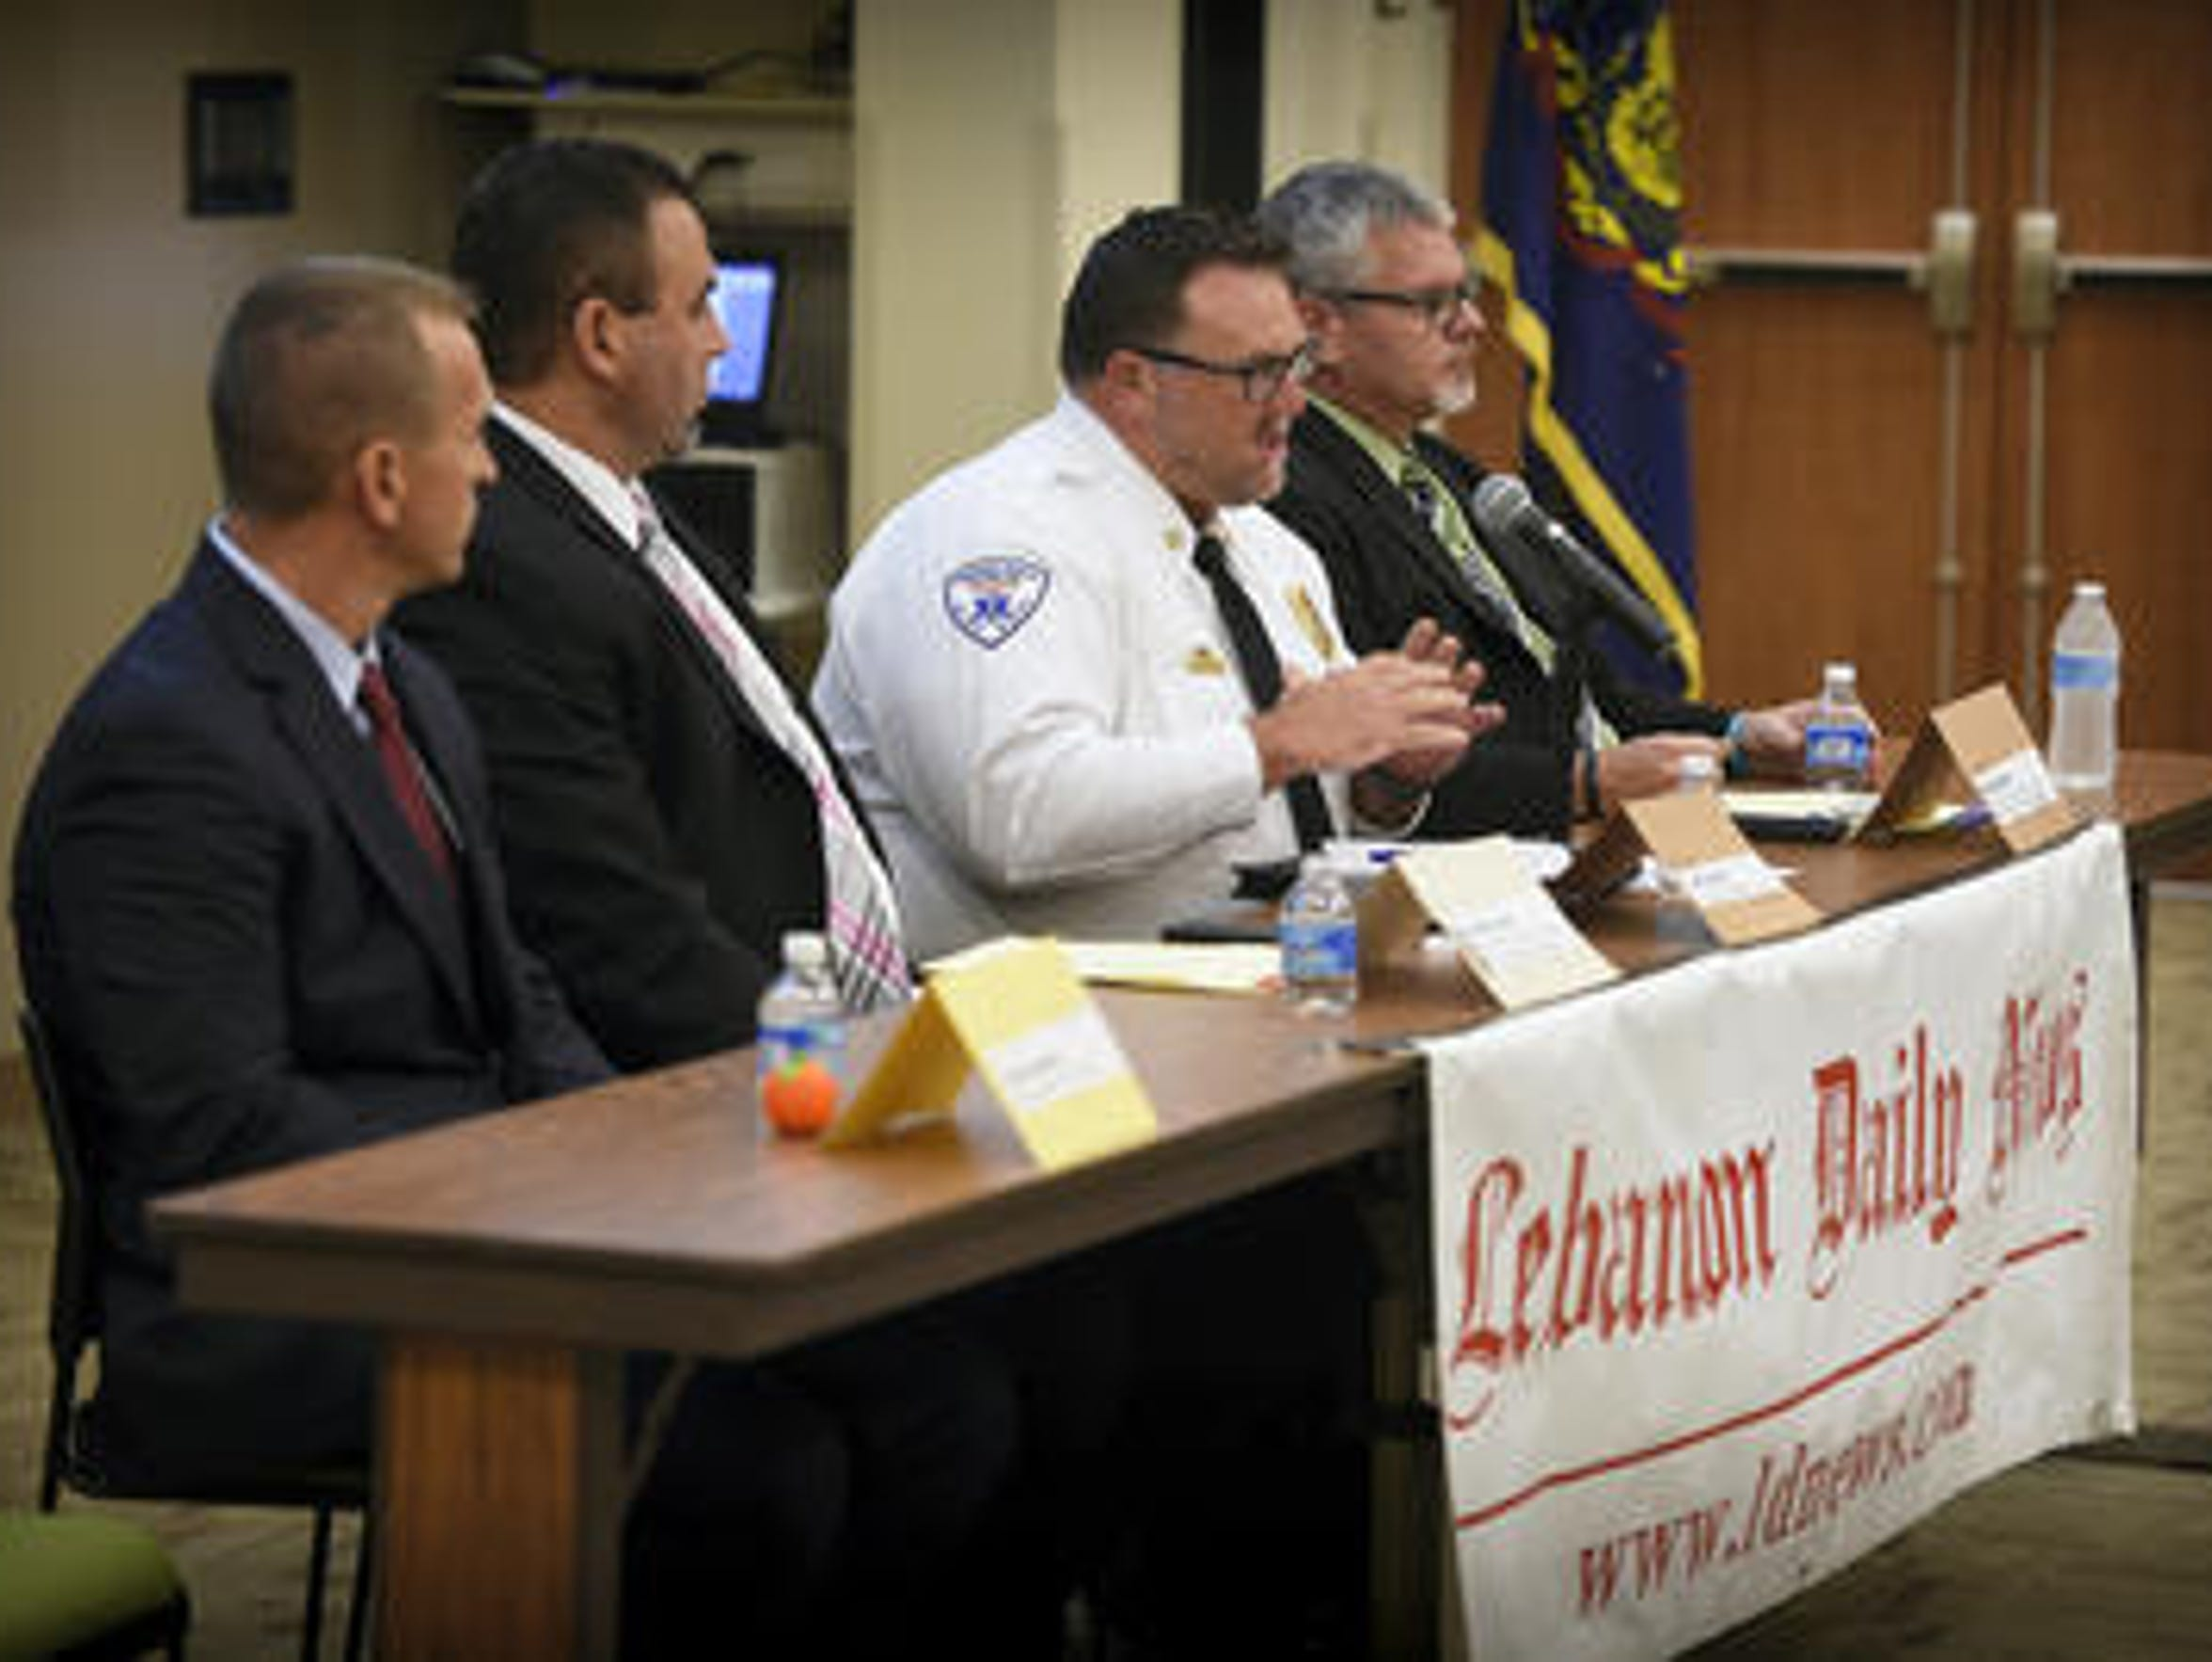 Panelists, from left, David Arnold, Lebanon County